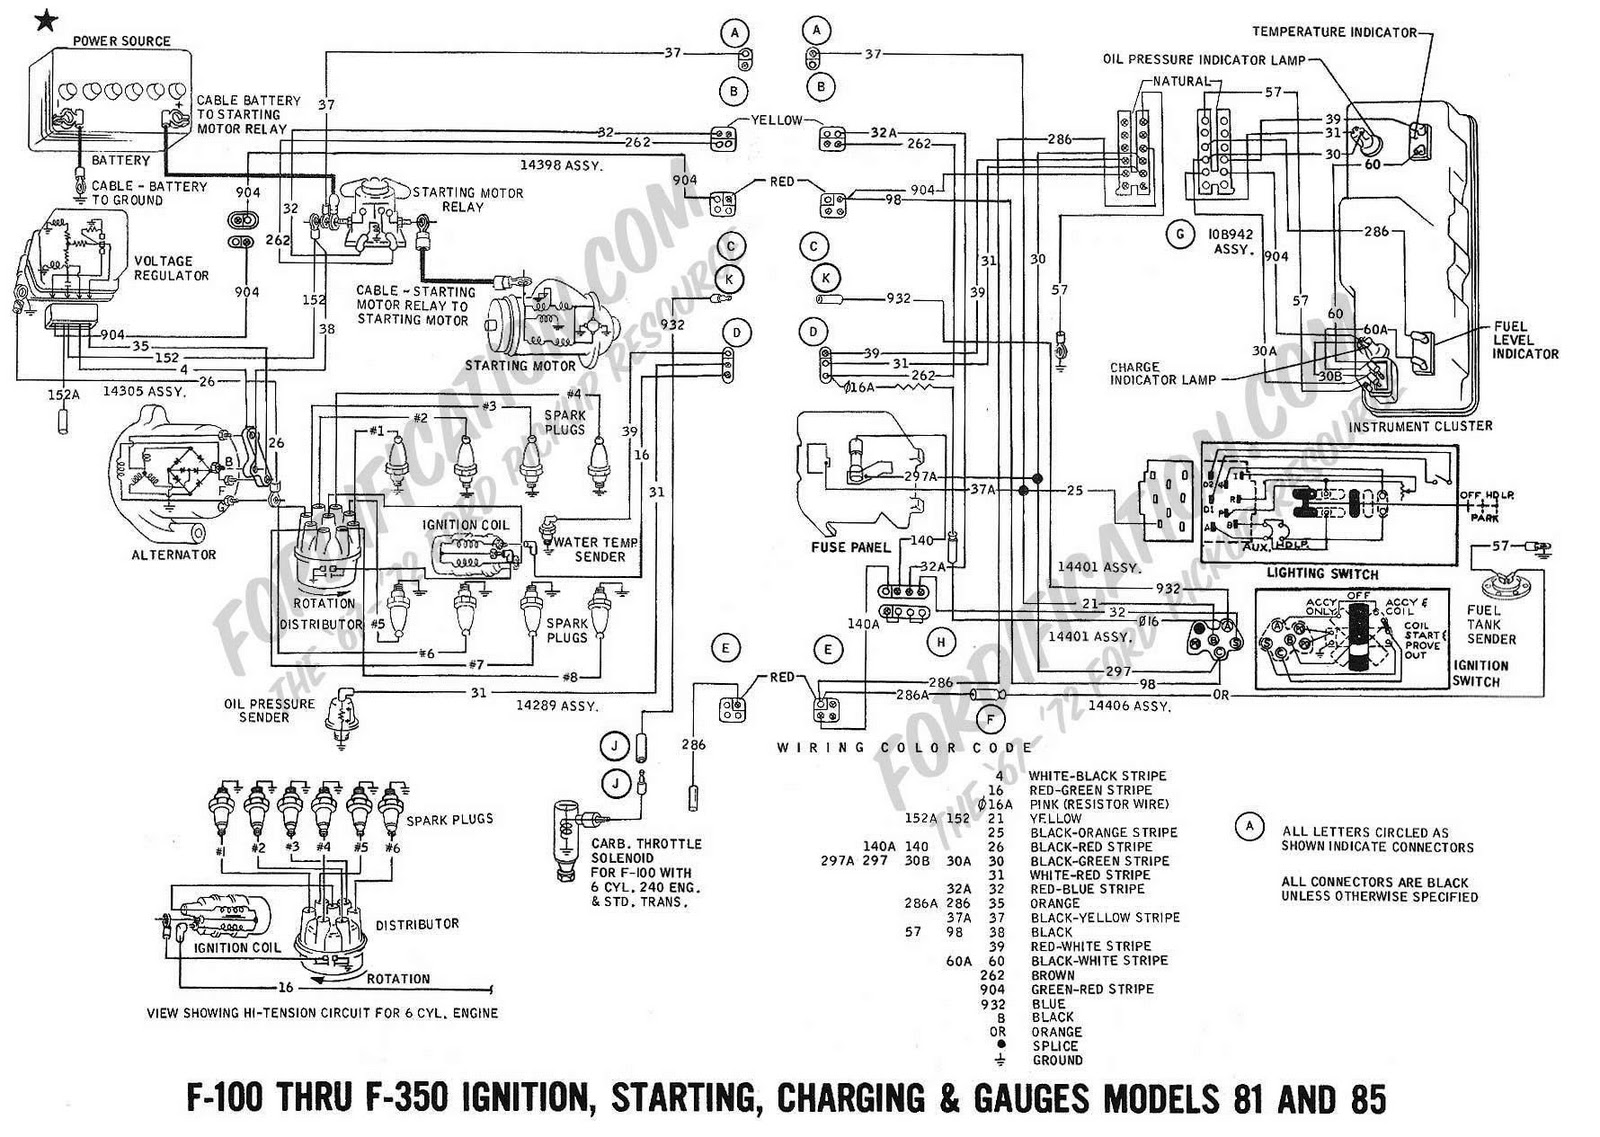 wiring diagram 89 f250 the wiring diagram 1987 f250 fuel gauge wiring diagram 1987 car wiring diagram